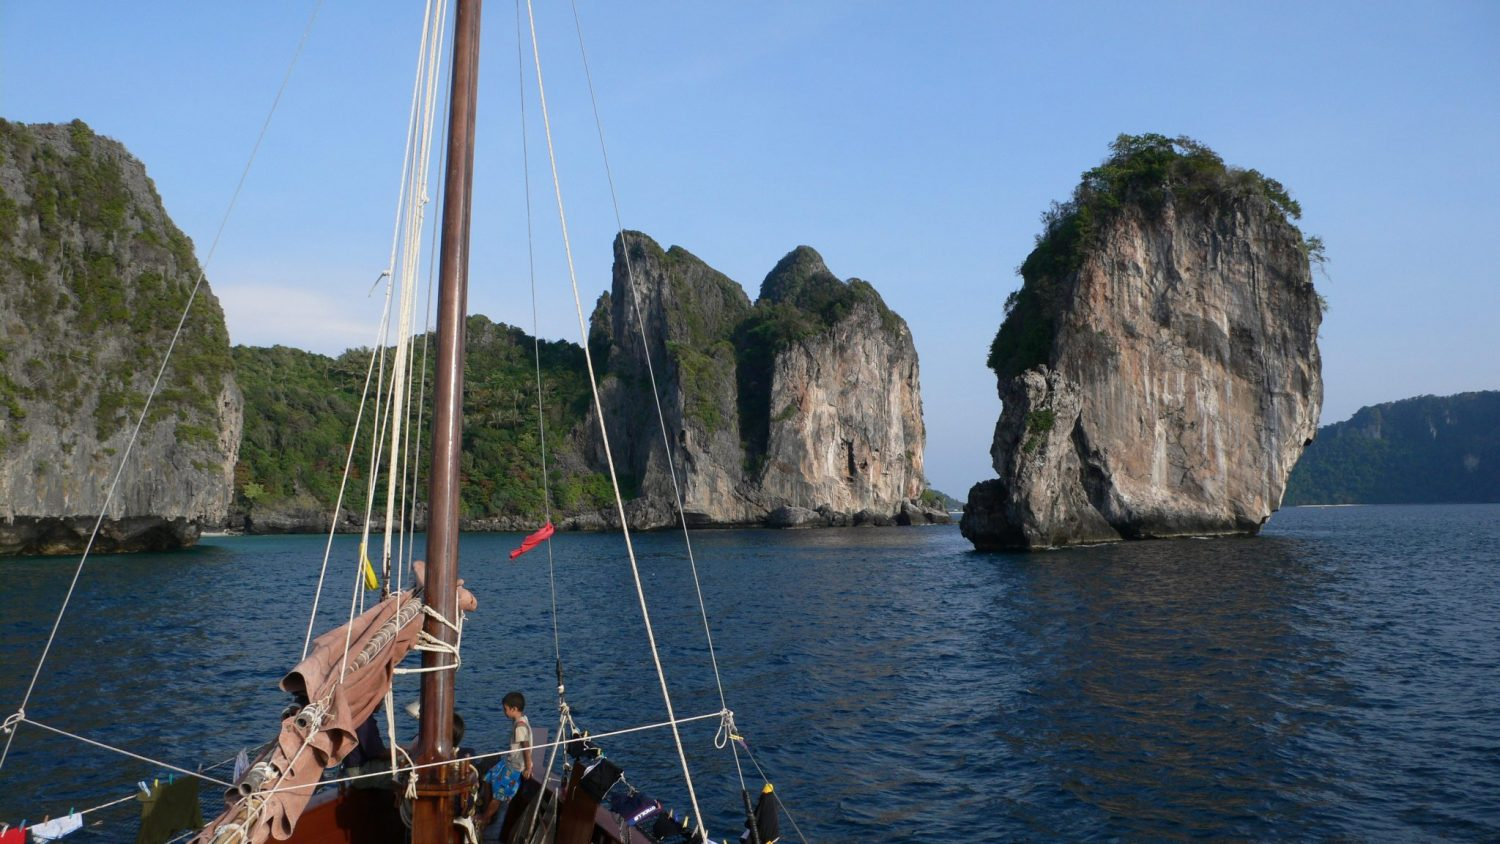 Dauw Talae Junk Cruises in the Andaman Sea between Phuket and Krabi